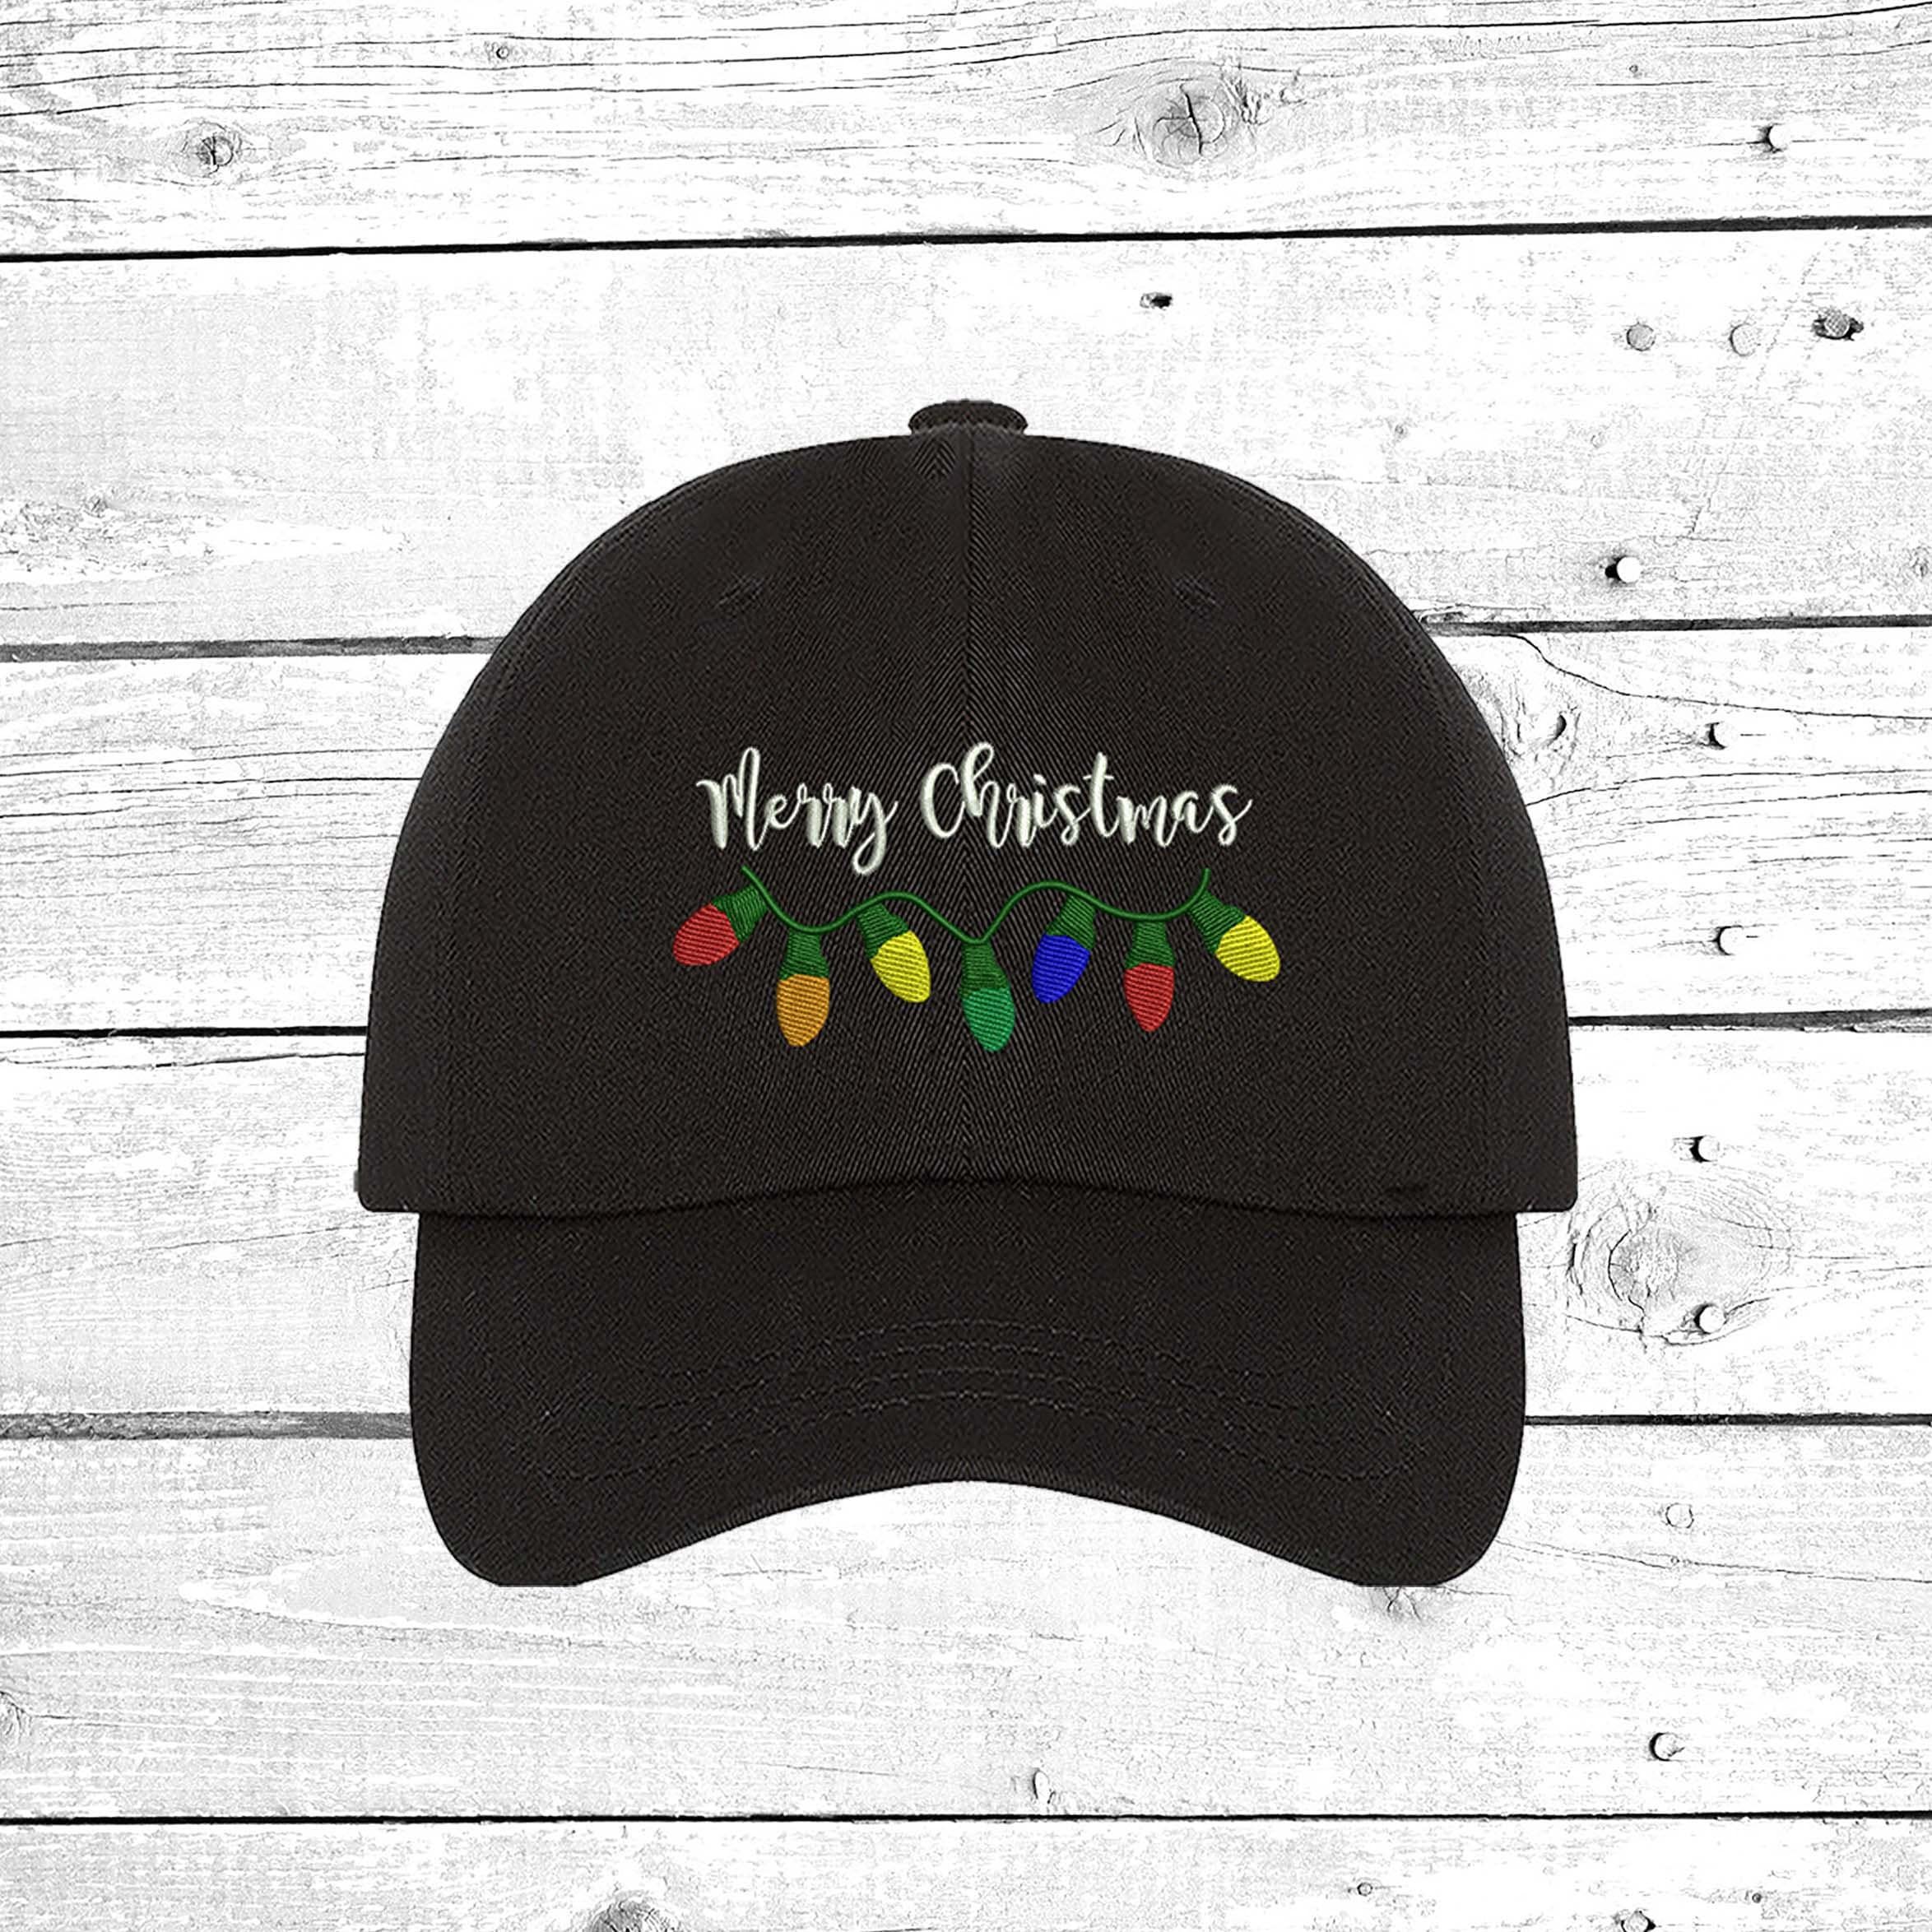 491b346256b6a Merry Christmas Hats Christmas Outfit Caps Holidays Baseball Hat ...